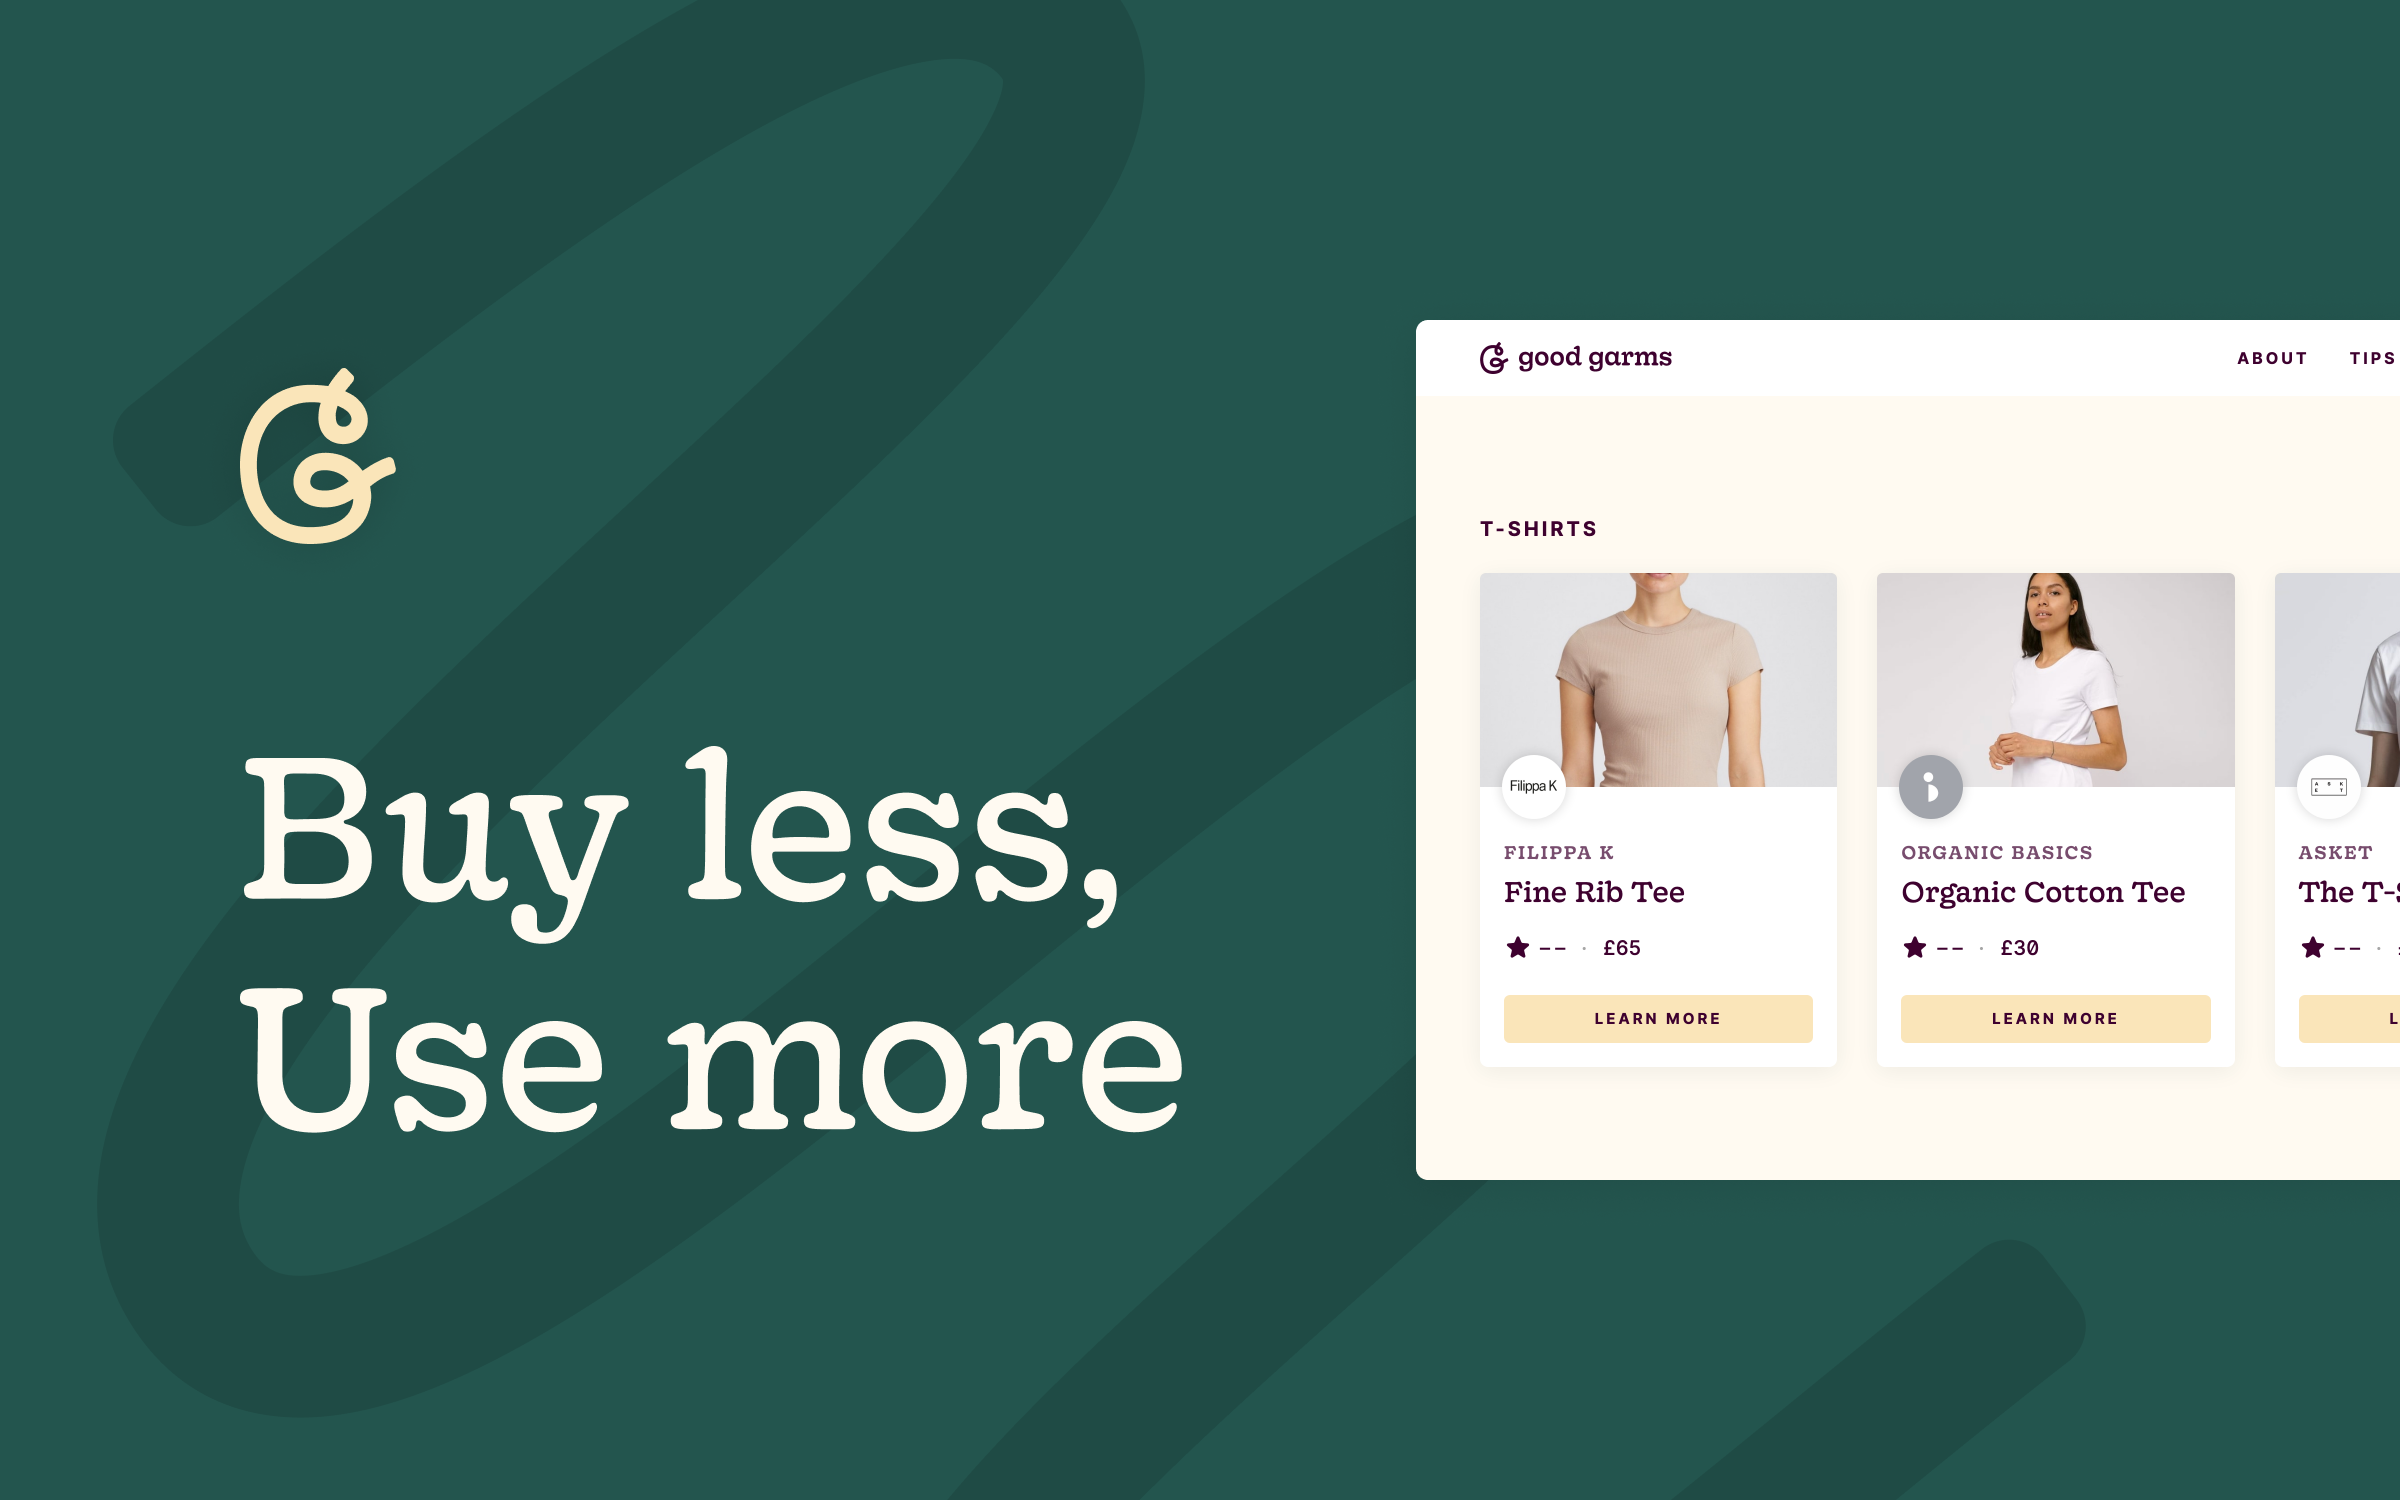 Good Garms:Buy less by knowing more